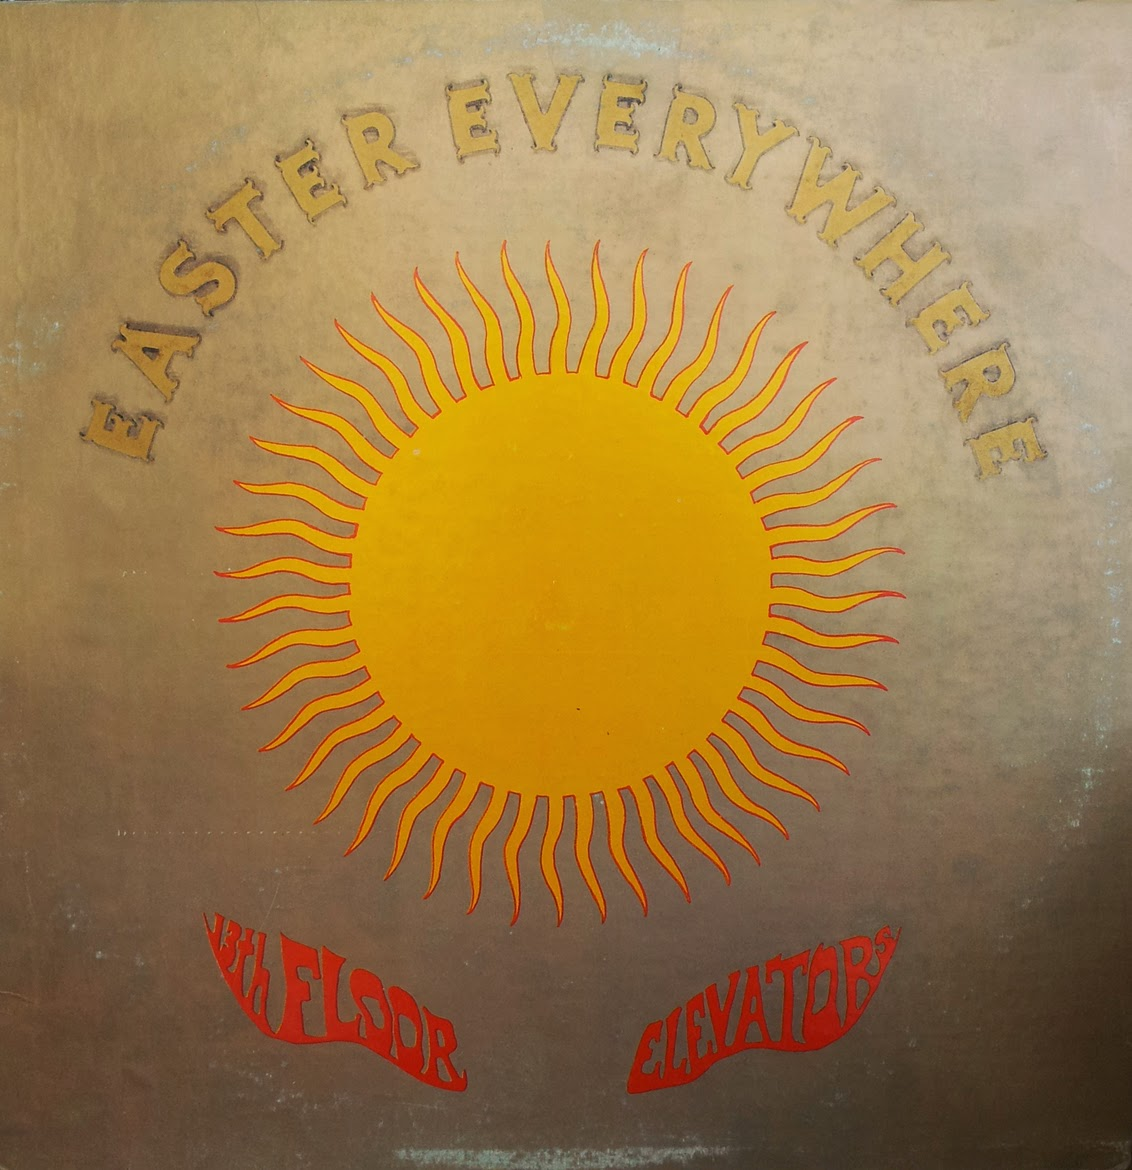 13th floor elevators easter everywhere 28 images for 13th floor elevators easter everywhere